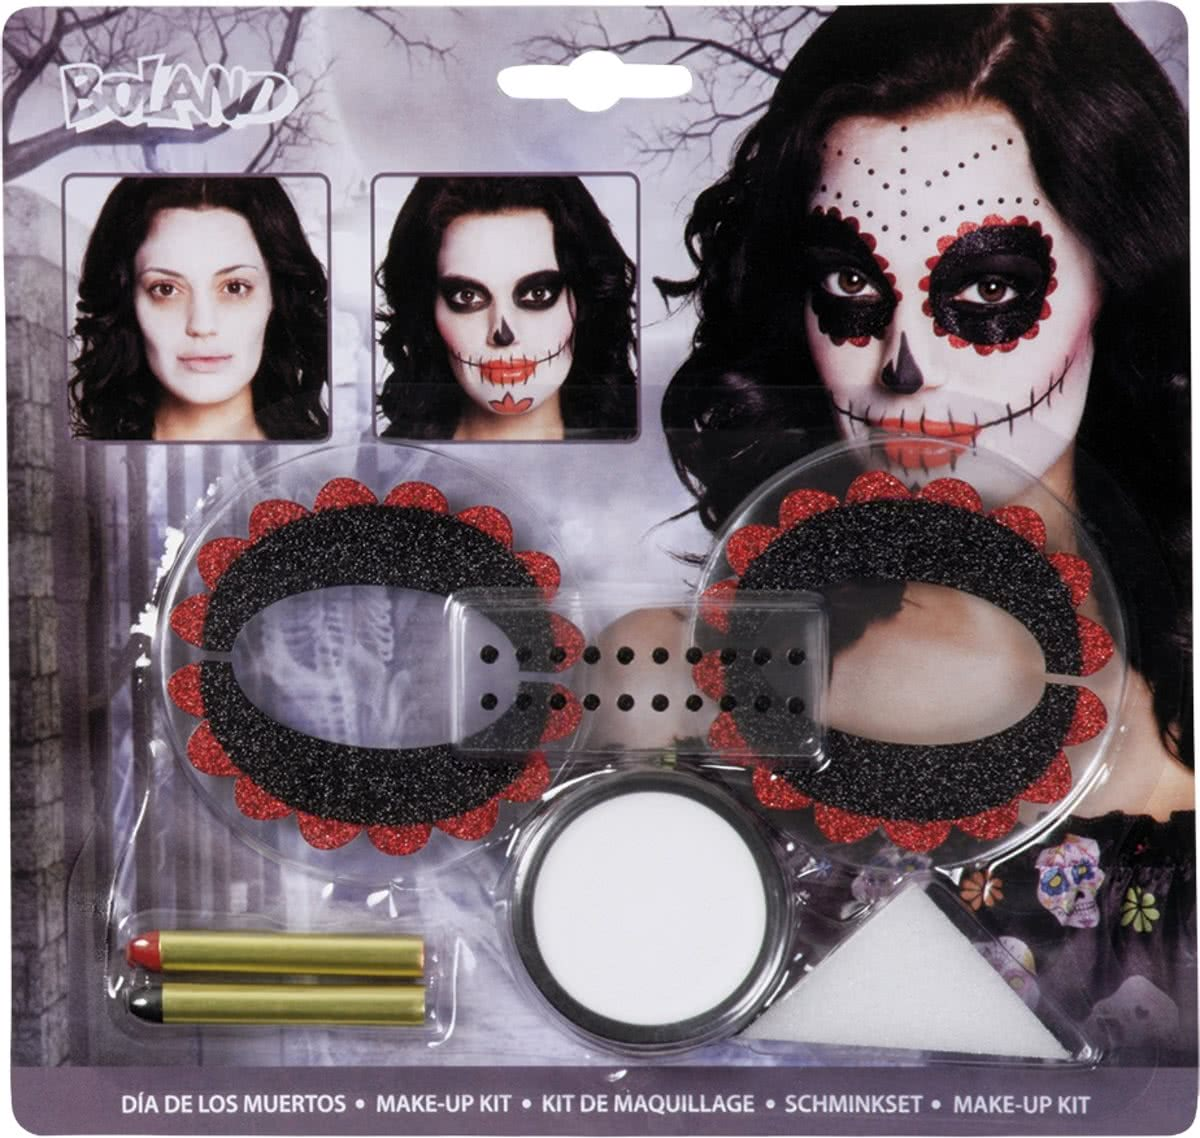 18 stuks: Kit make-up Day of the dead - make-up, 1 spons, 2 oogdecoraties